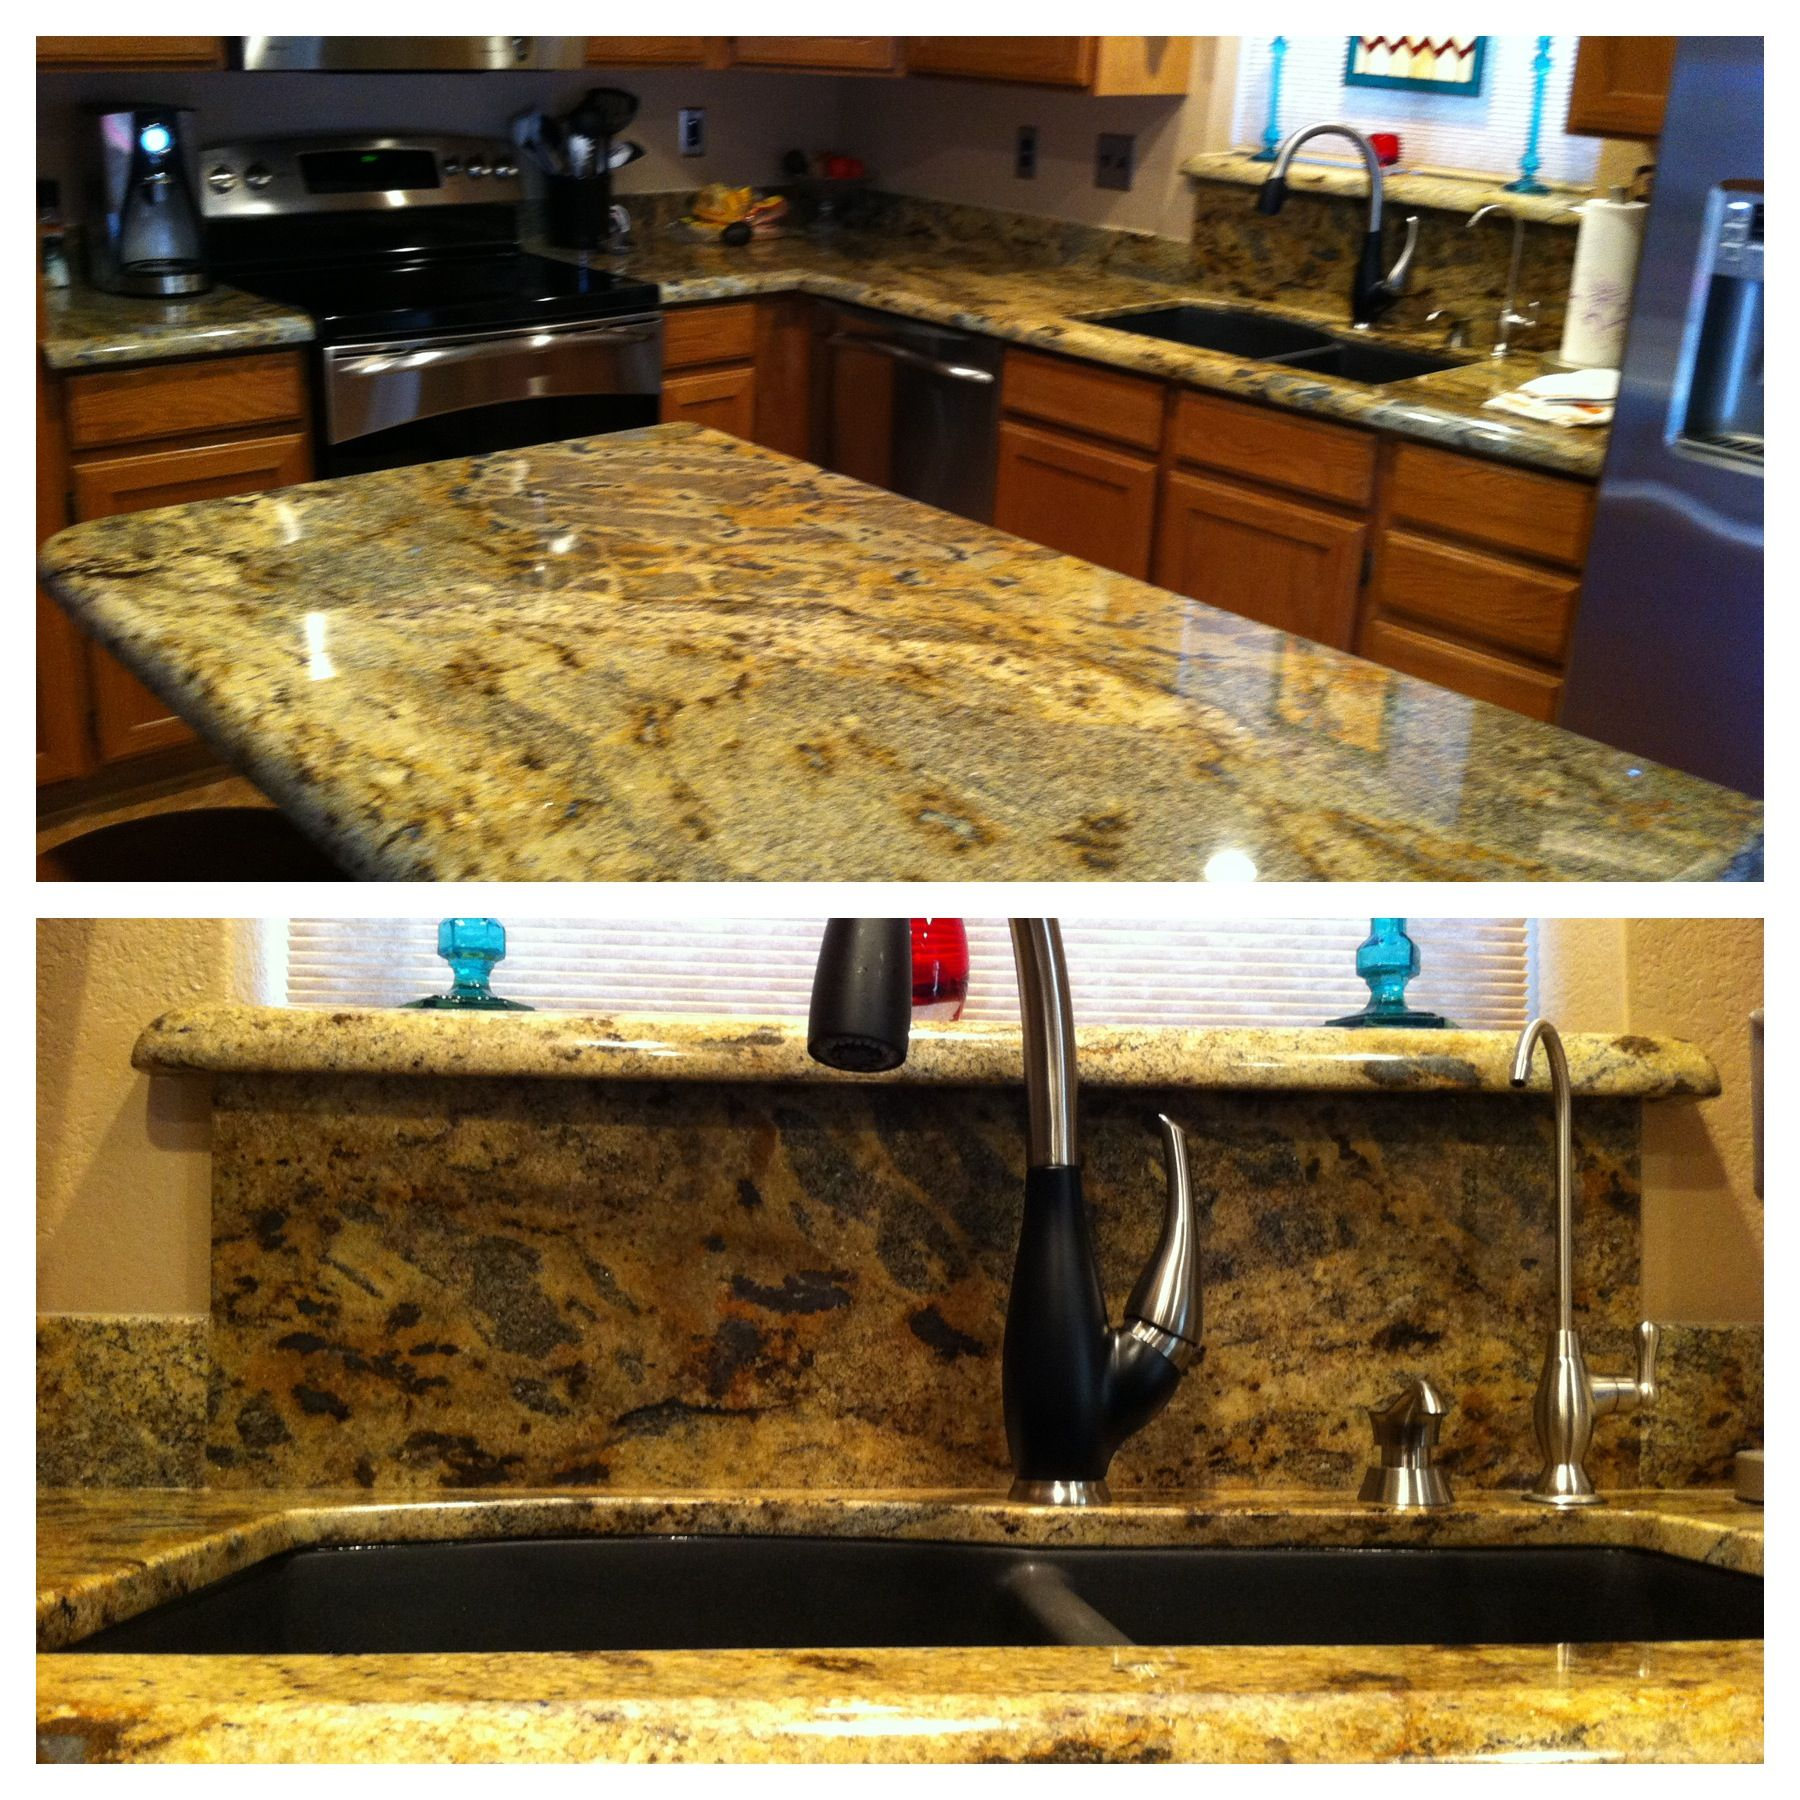 Sill Granite Sink : Lapidus with a black, granite composite sink and matching window sill ...